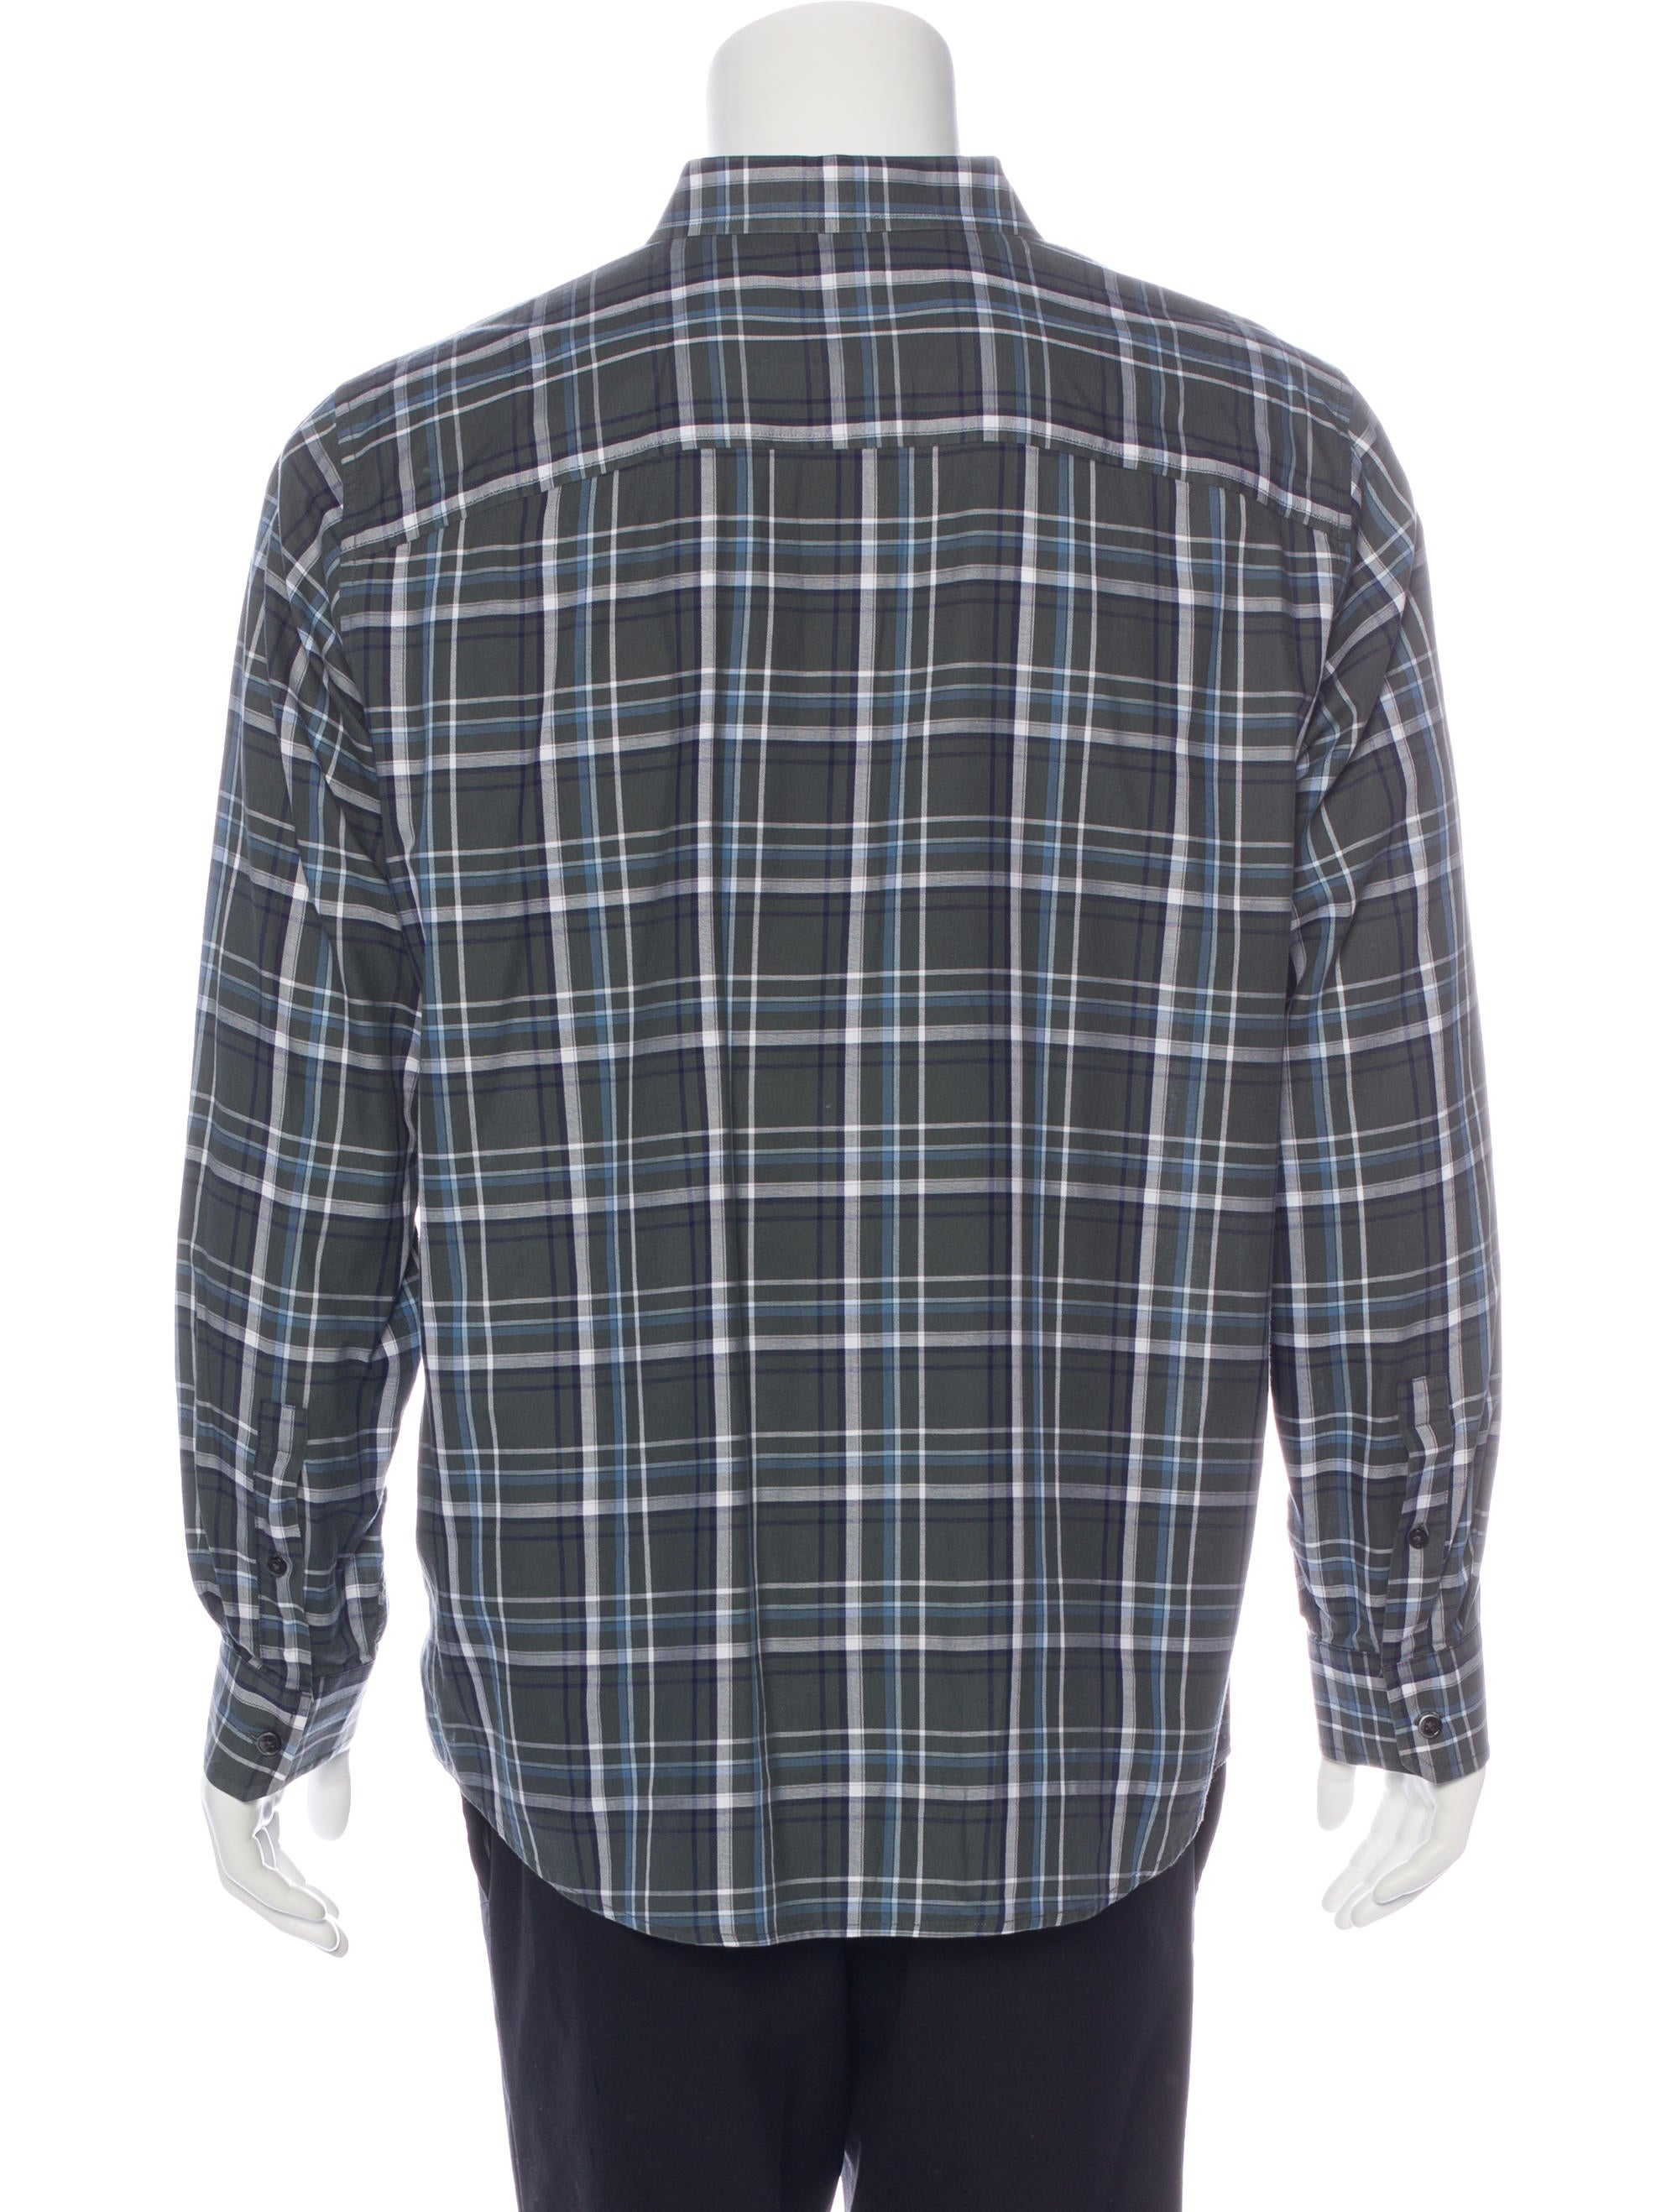 Package include 1 Shirt Women Check Plaid Long Sleeve Polo Neck Buttons Abollria Women's Roll up Long Sleeve Boyfriend Button Down Plaid Flannel Shirt (S-XXL. by Abollria. $ - $ $ 3 $ 21 99 Prime. FREE Shipping on eligible orders. Some sizes/colors are Prime eligible.